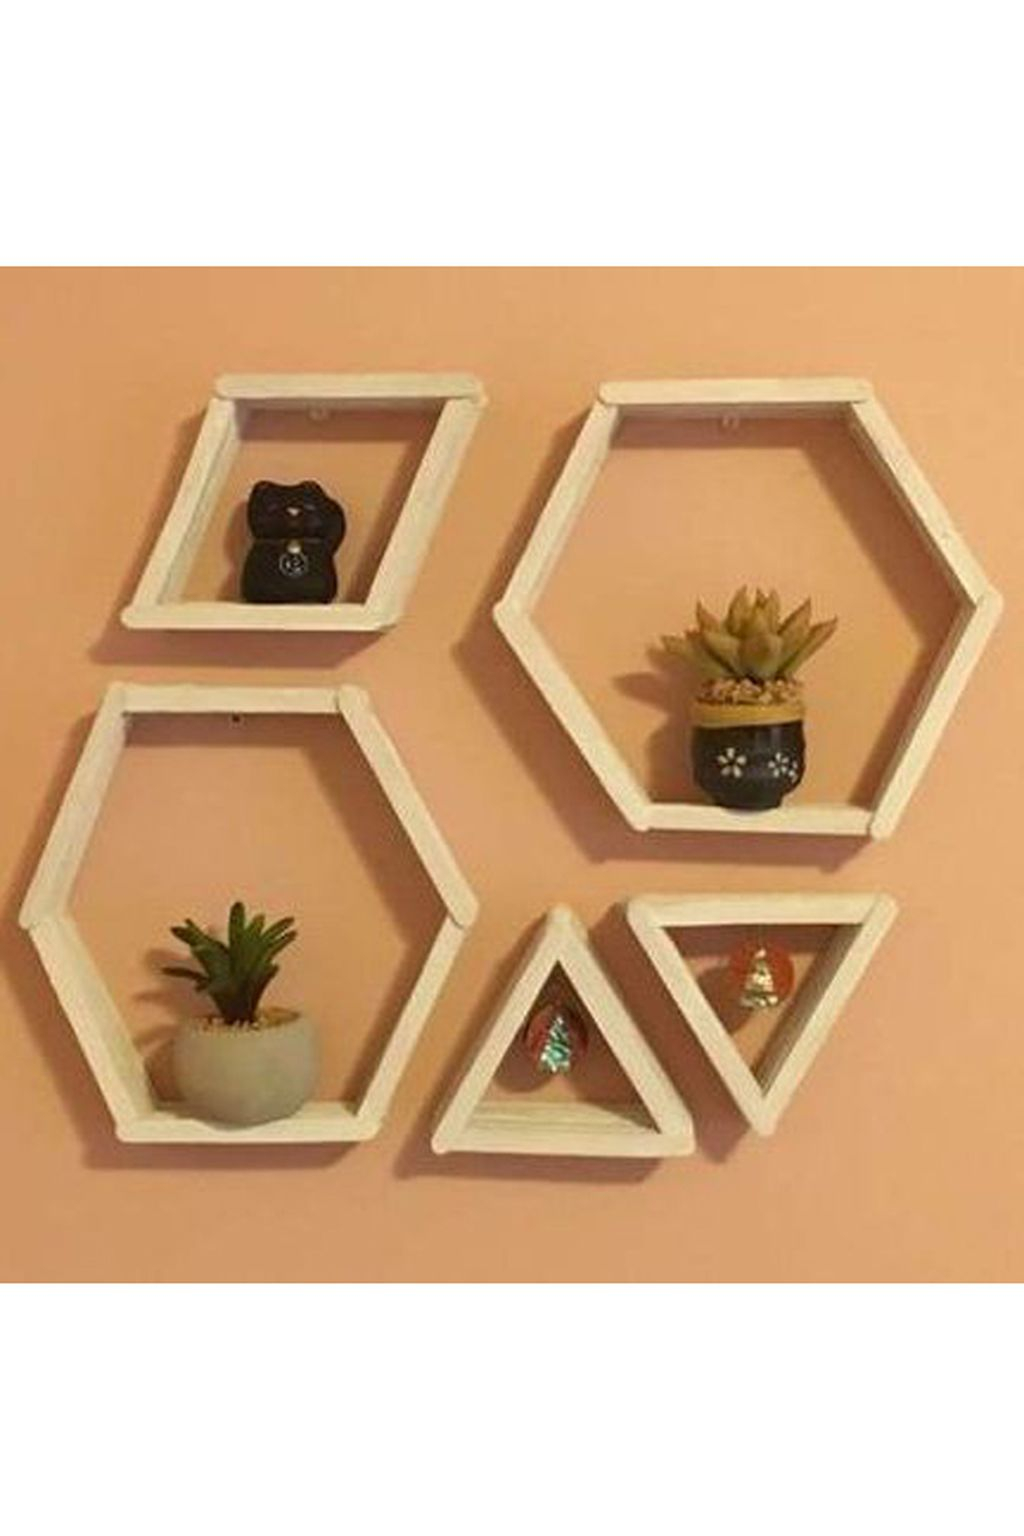 Gorgeous Diy Popsicle Stick Design Ideas For Home To Try Asap 02